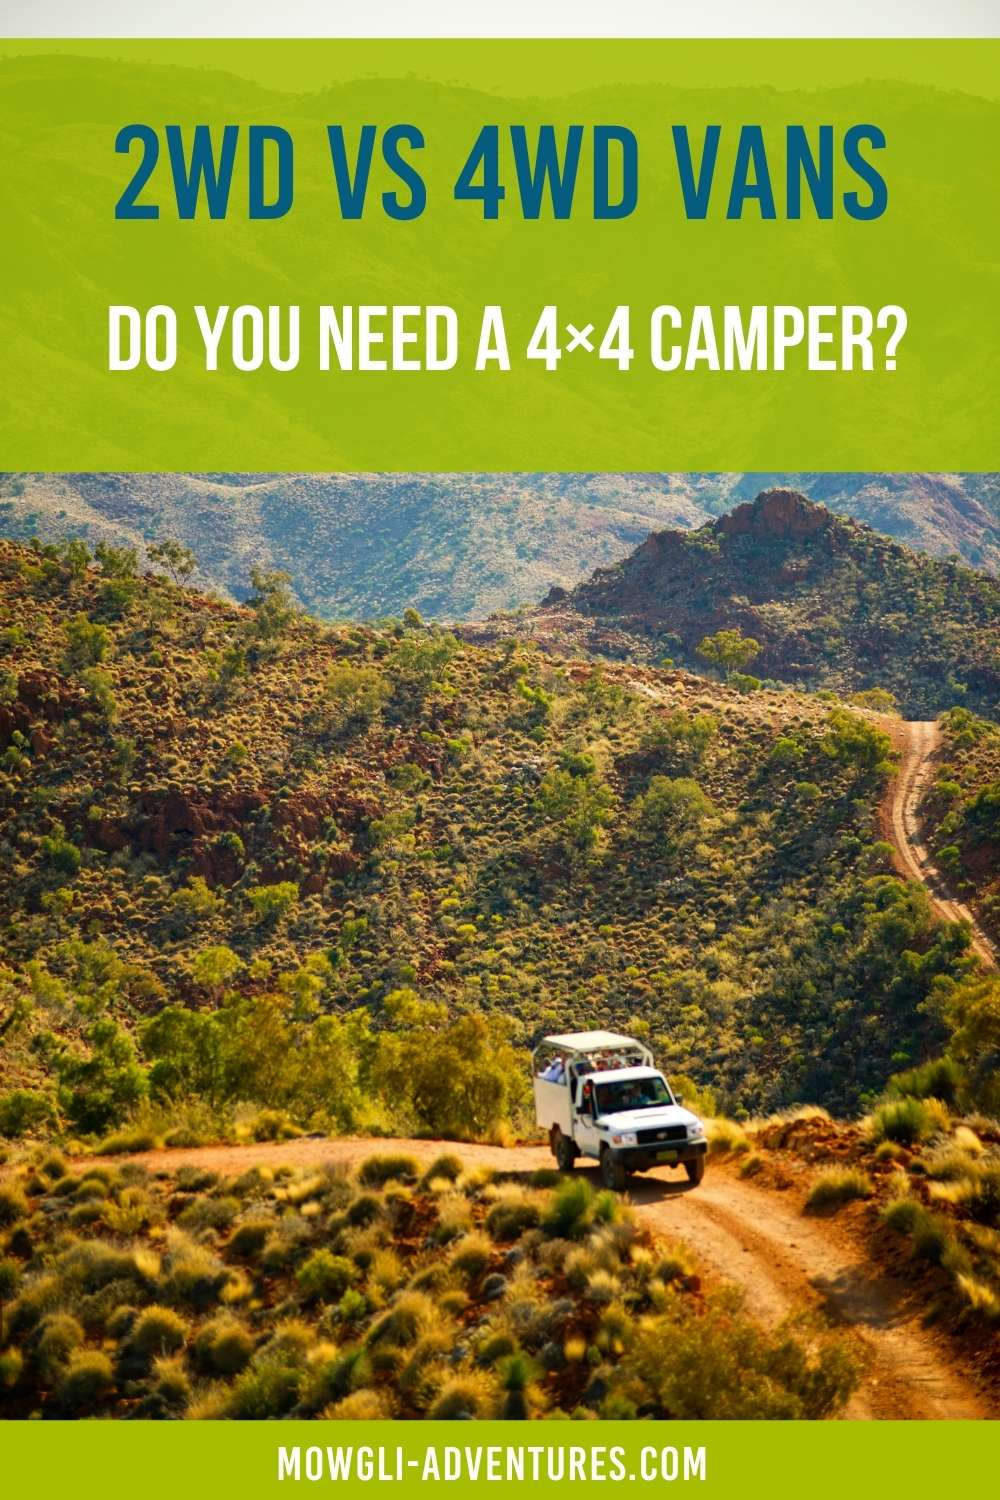 2wd vs 4wd - Do you need a 4x4 camper